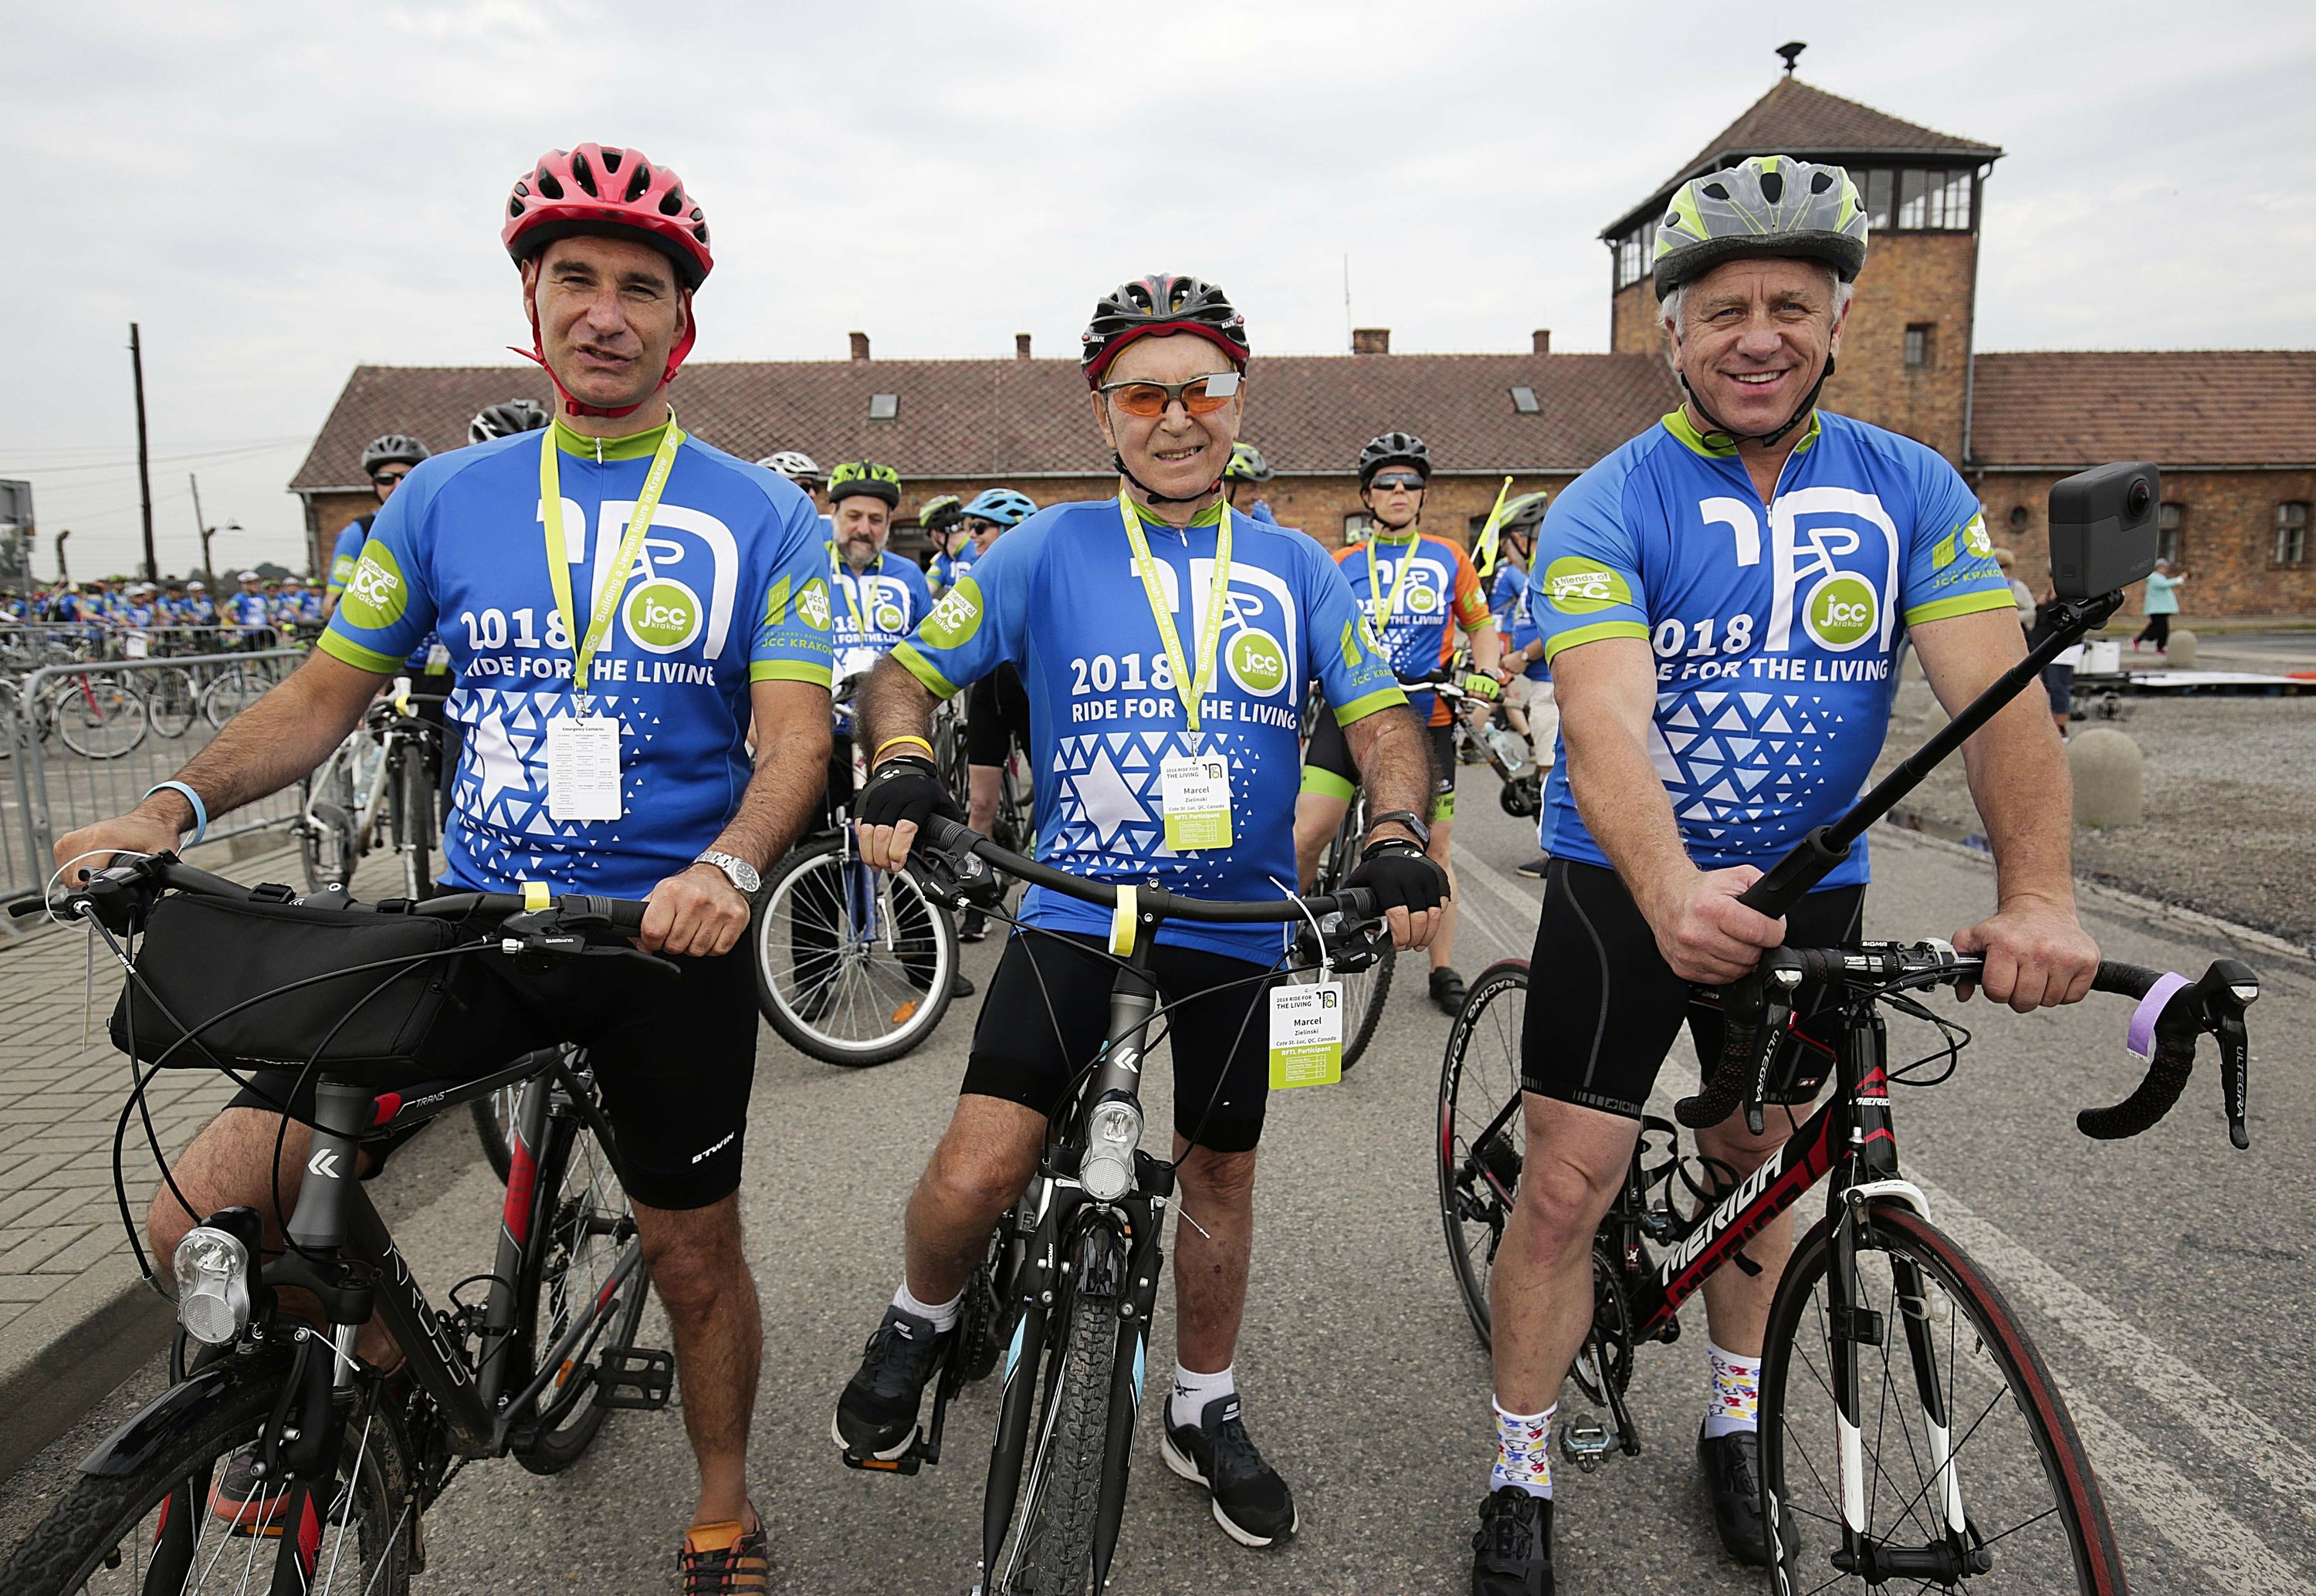 LeMond, Holocaust survivors ride to celebrate Jewish life